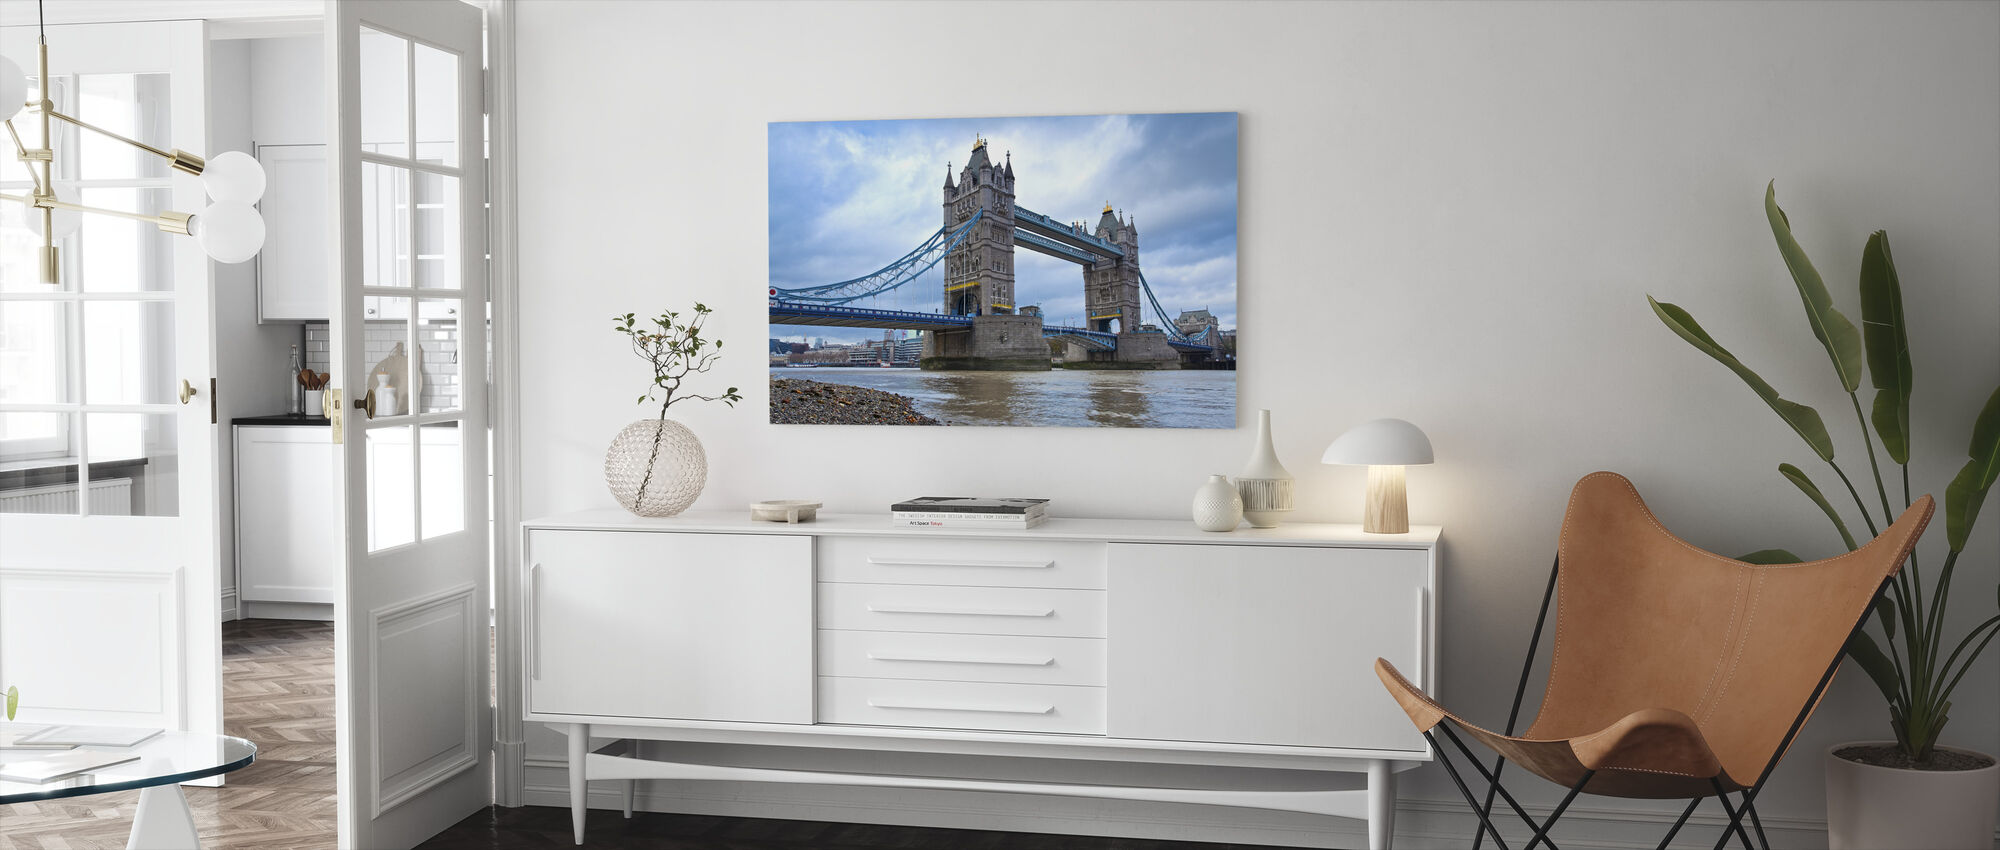 Looking Up at Tower Bridge - Canvas print - Living Room